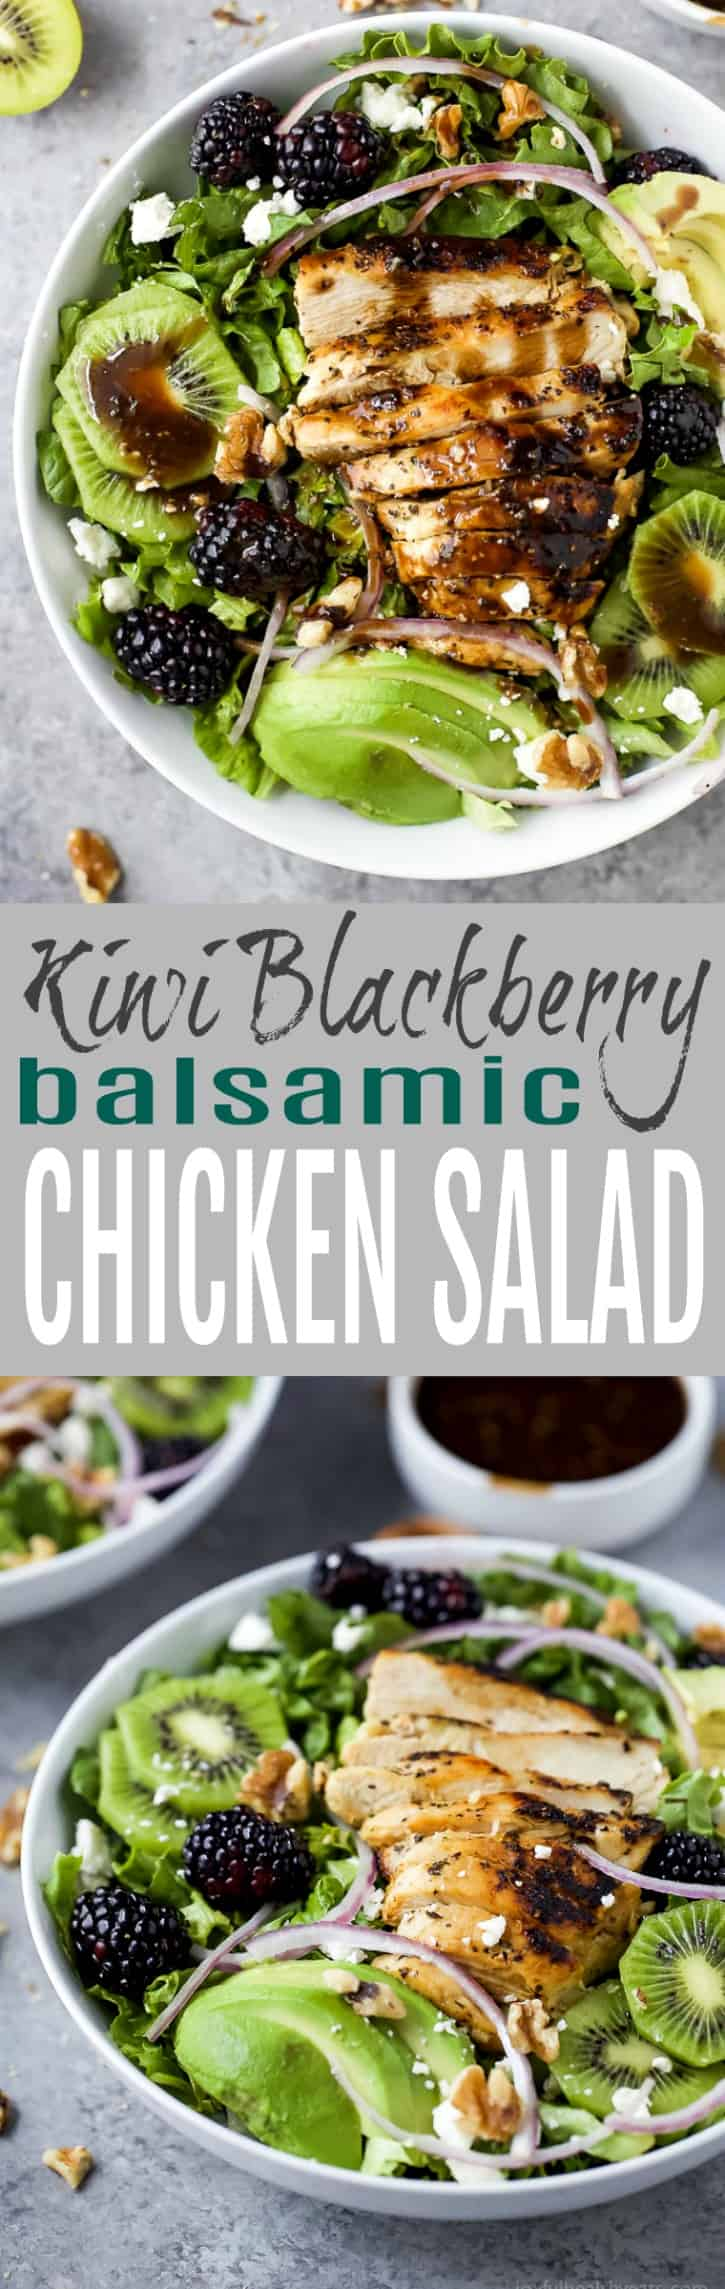 Blackberry Kiwi Balsamic Chicken Salad - an easy light naturally gluten free salad recipe filled with fresh fruit, feta cheese and tender chicken. This quick 30 minute Balsamic Chicken Salad is perfect for the warmer weather!